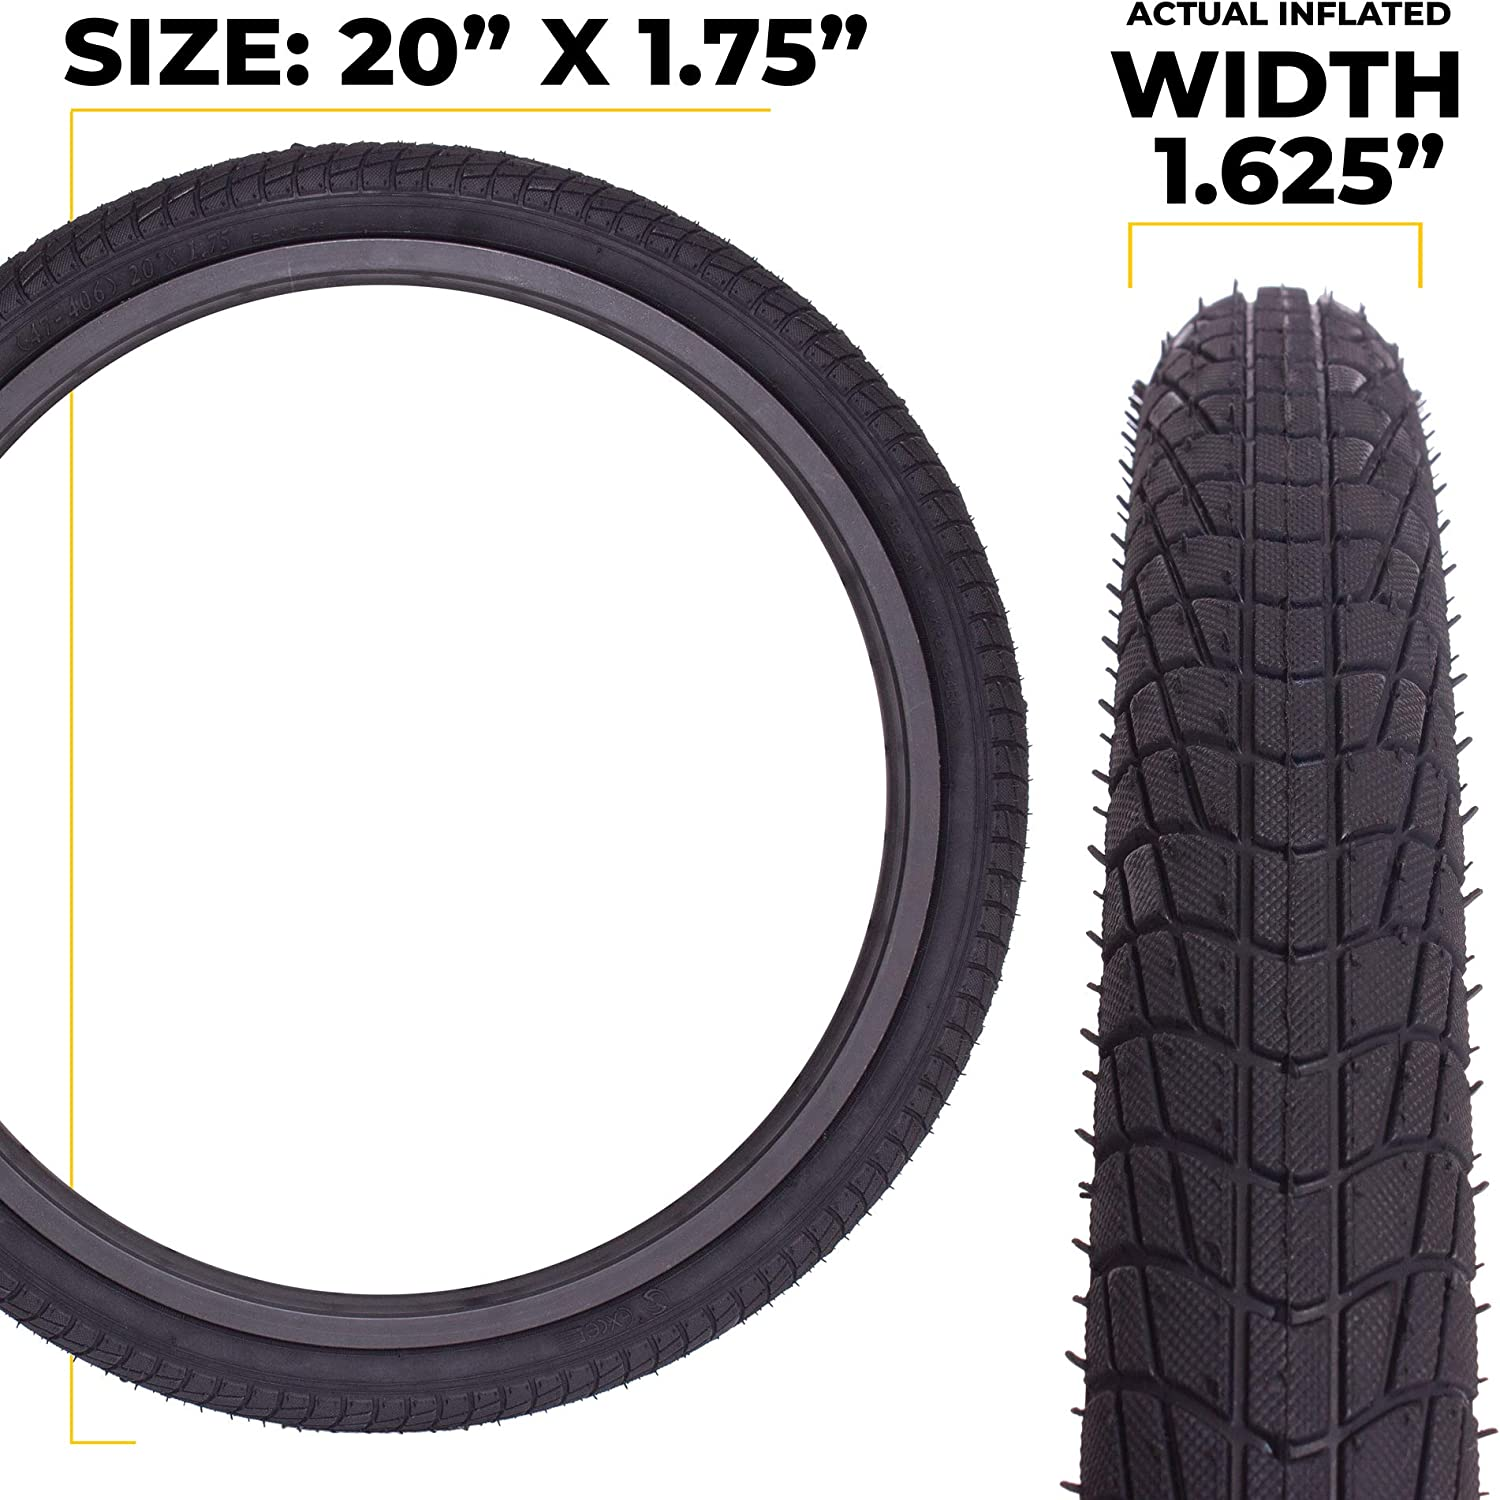 Tire Front or Rear Wheels Rims 1 Pack or 2 Pack. with or Without Tubes Eastern Bikes 20 Inch Bike Tire Packages for Kids and BMX Tires Fits 20x1.75 Bike Tube Includes Tire Tools